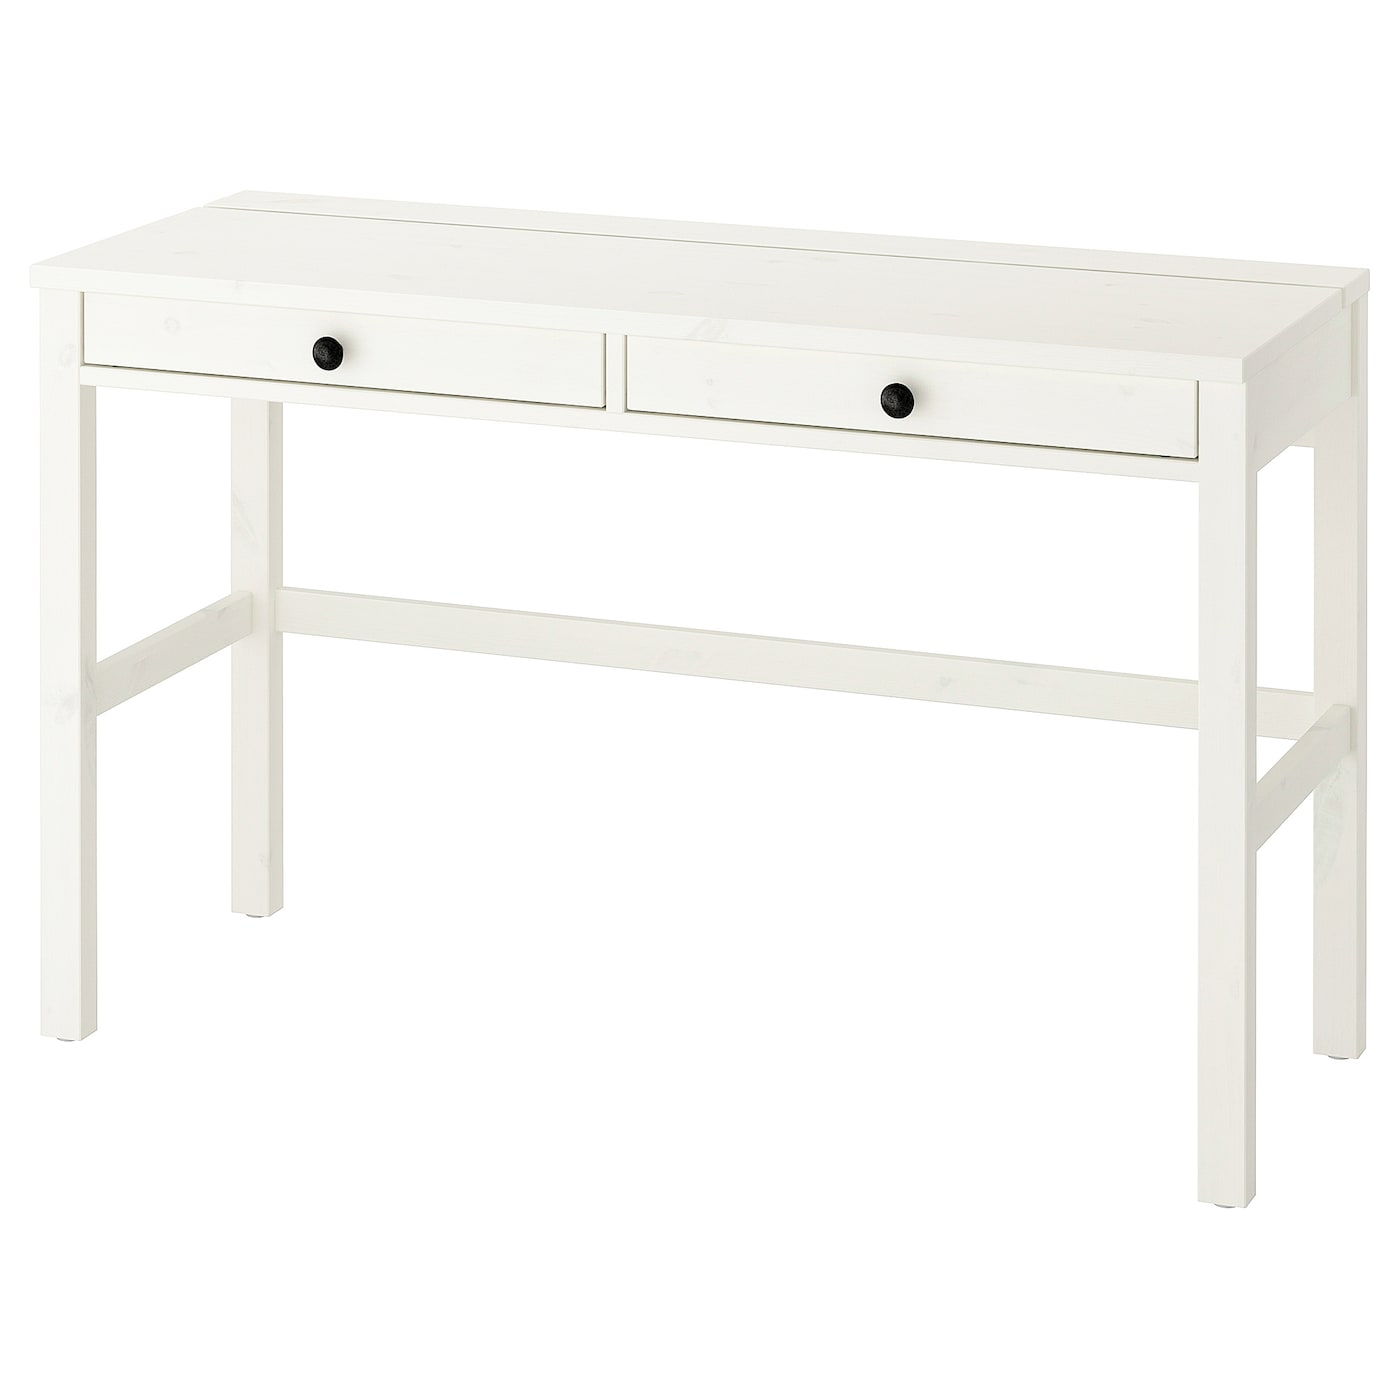 Hemnes Desk With 2 Drawers White Stain 47 1 4x18 1 2 Ikea